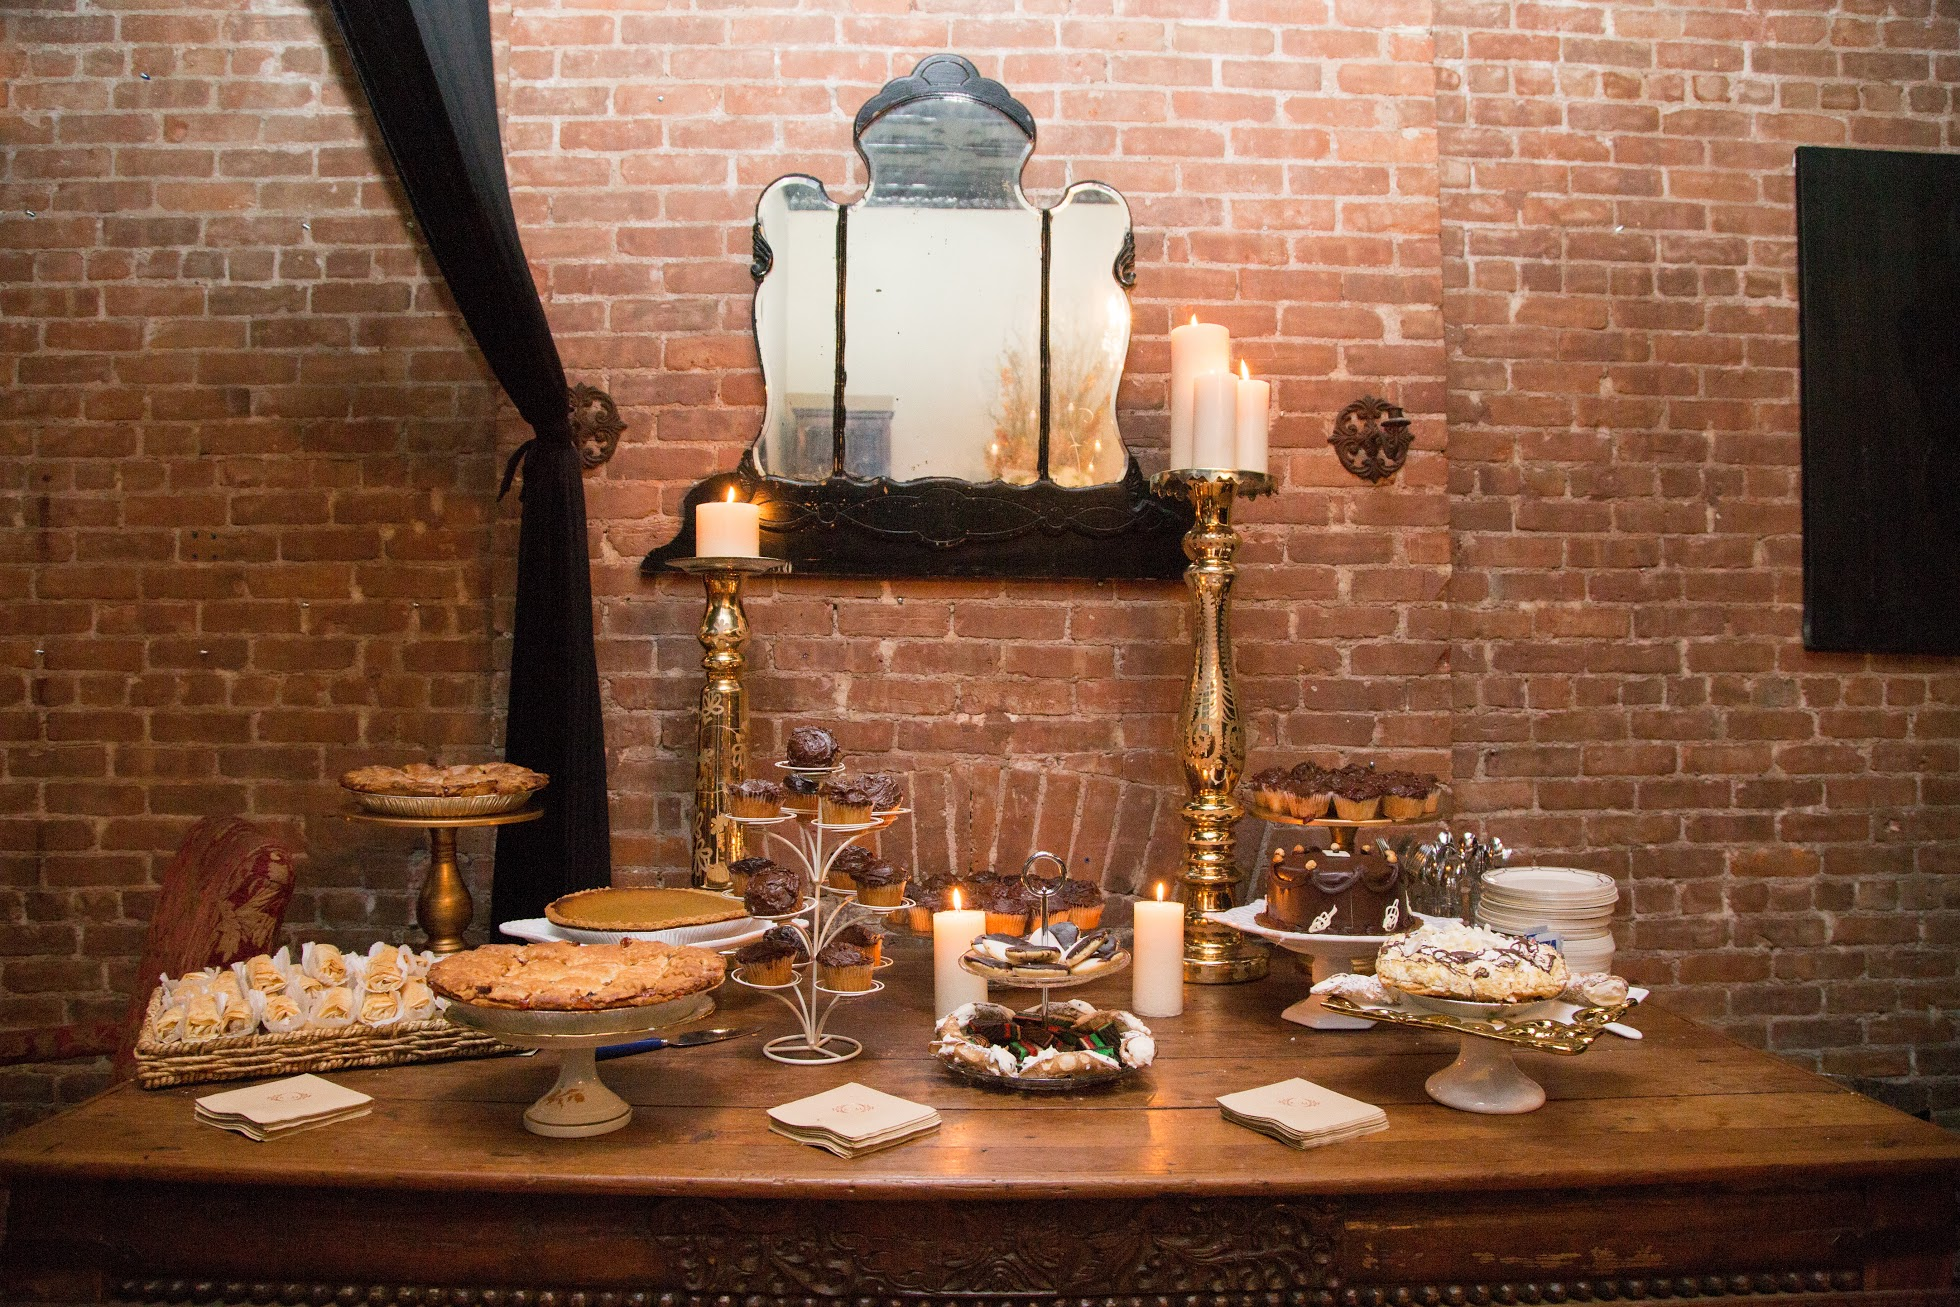 Sweet station at engagement party with Greek desserts